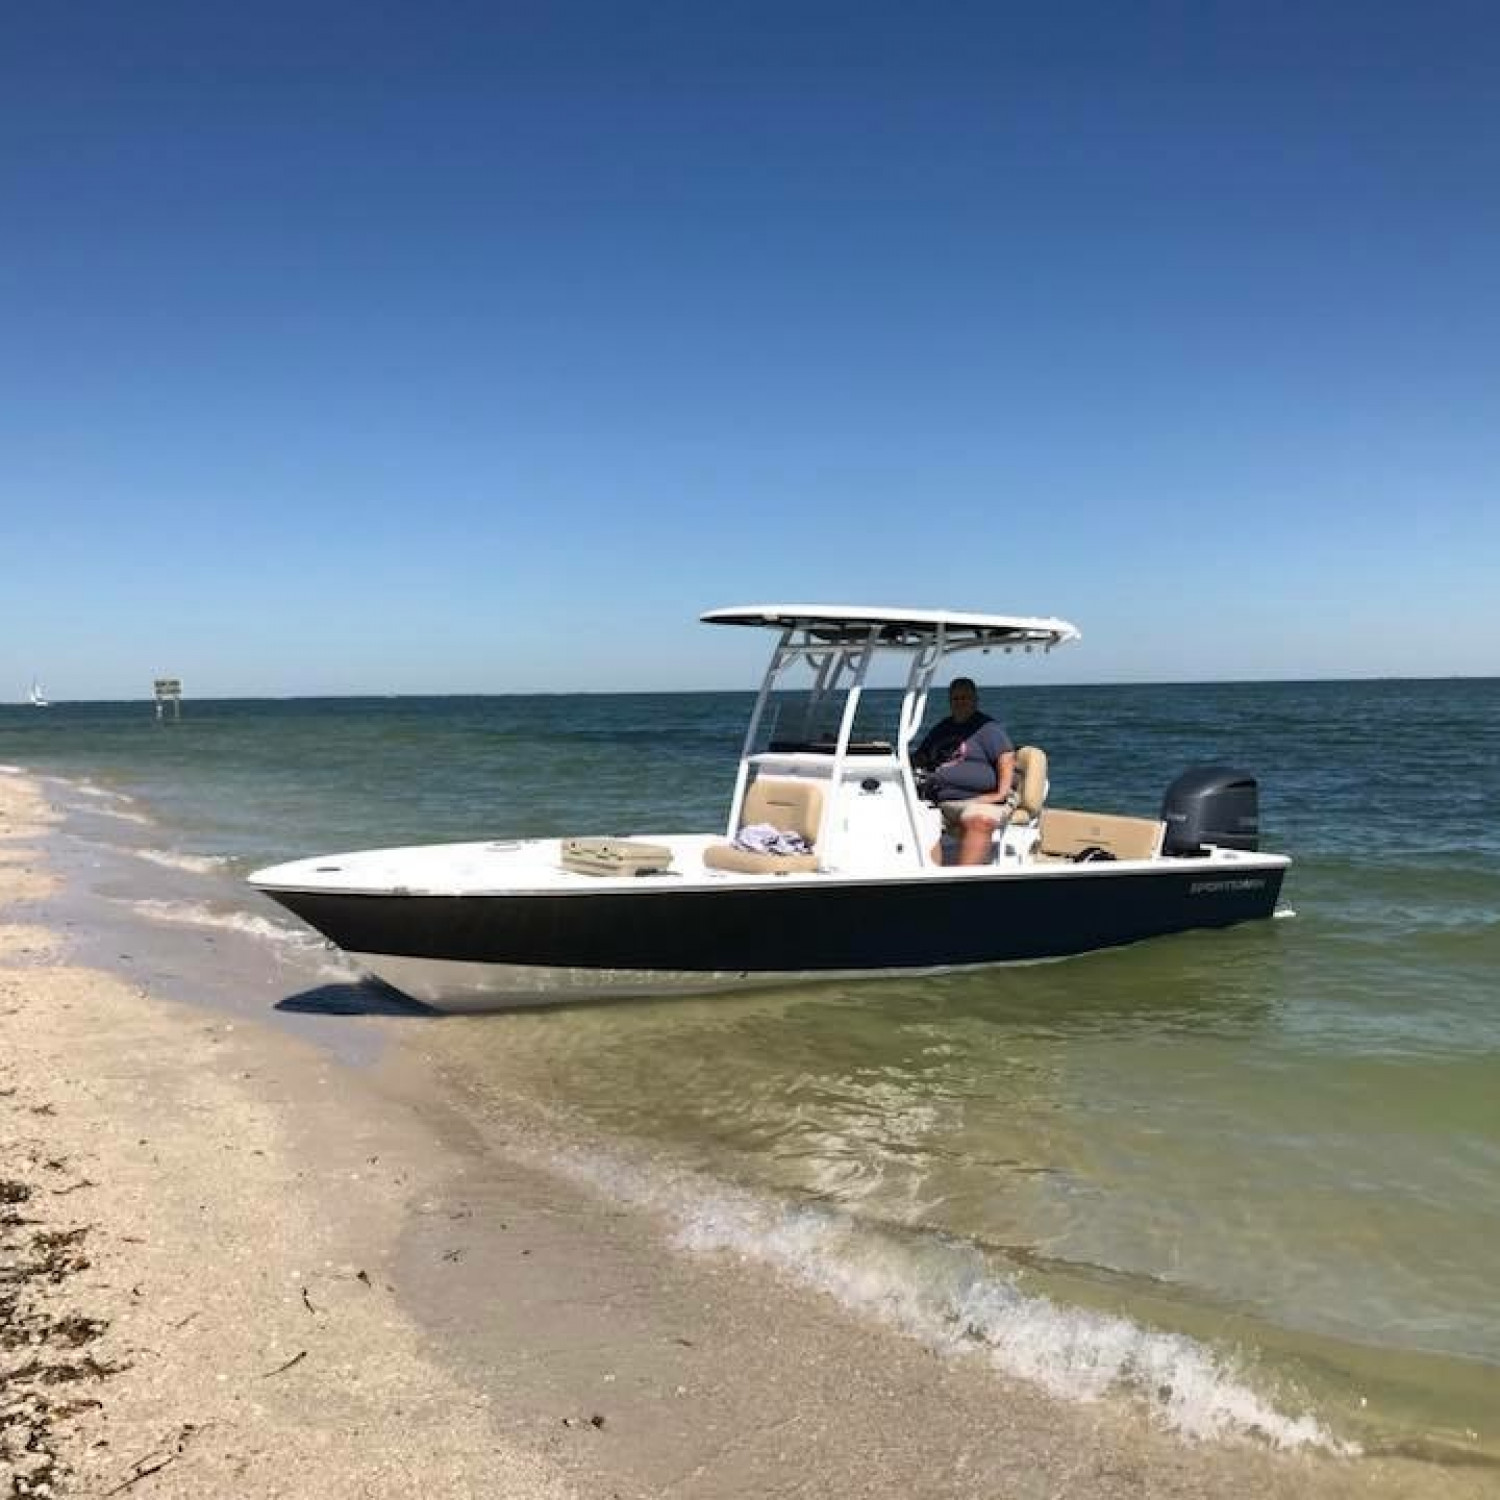 Title: On the beach - On board their Sportsman Masters 247 Bay Boat - Location: Cayo Costa State Park, SW Florida. Participating in the Photo Contest #SportsmanMarch2018